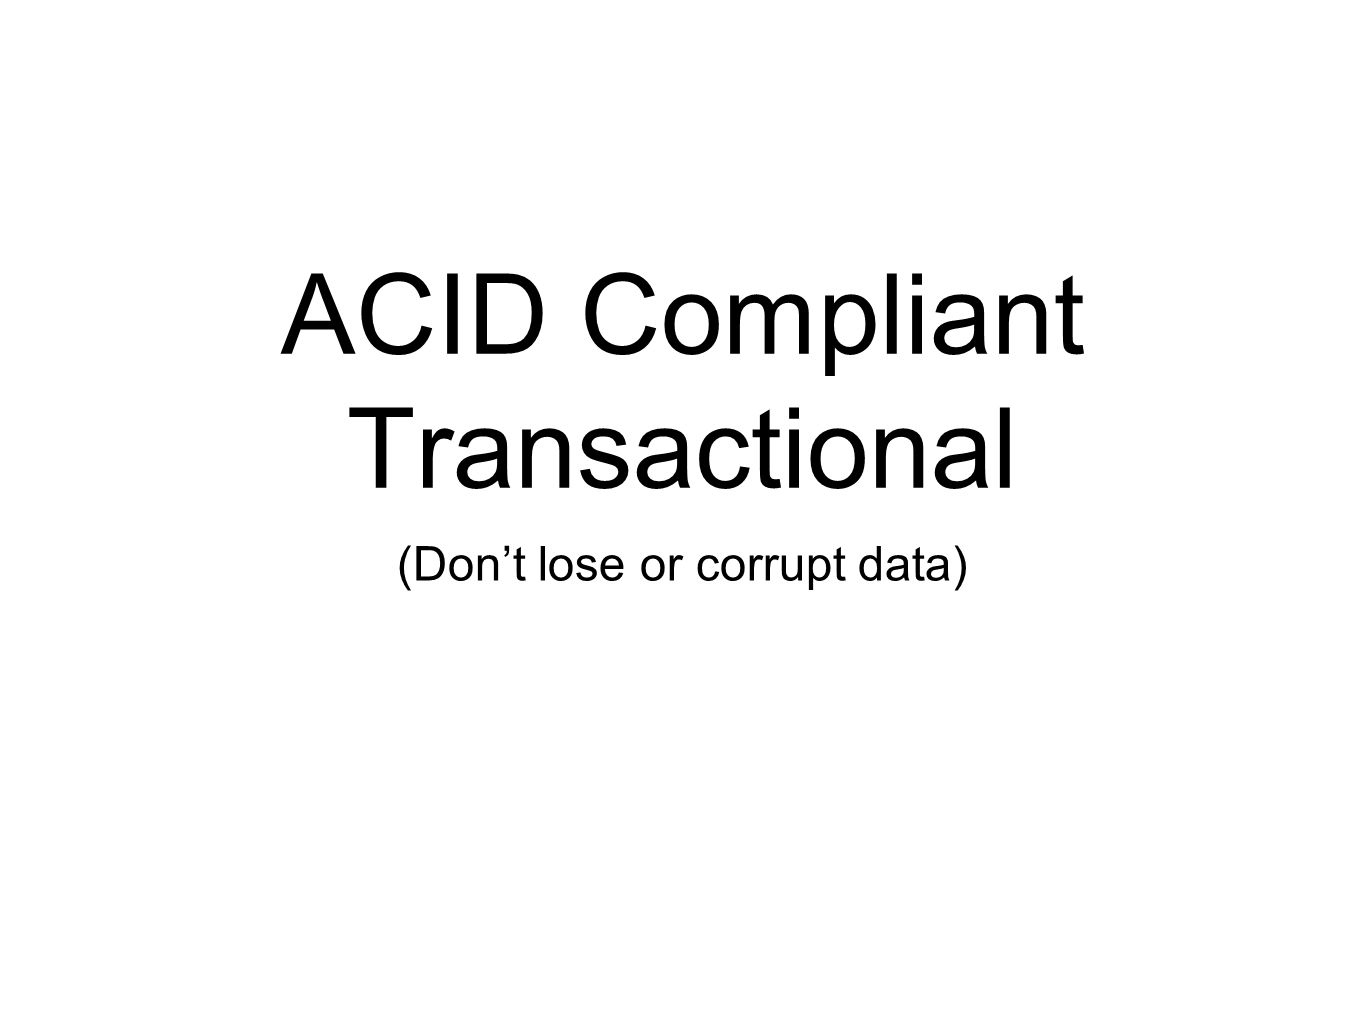 (Dont lose or corrupt data) ACID Compliant Transactional